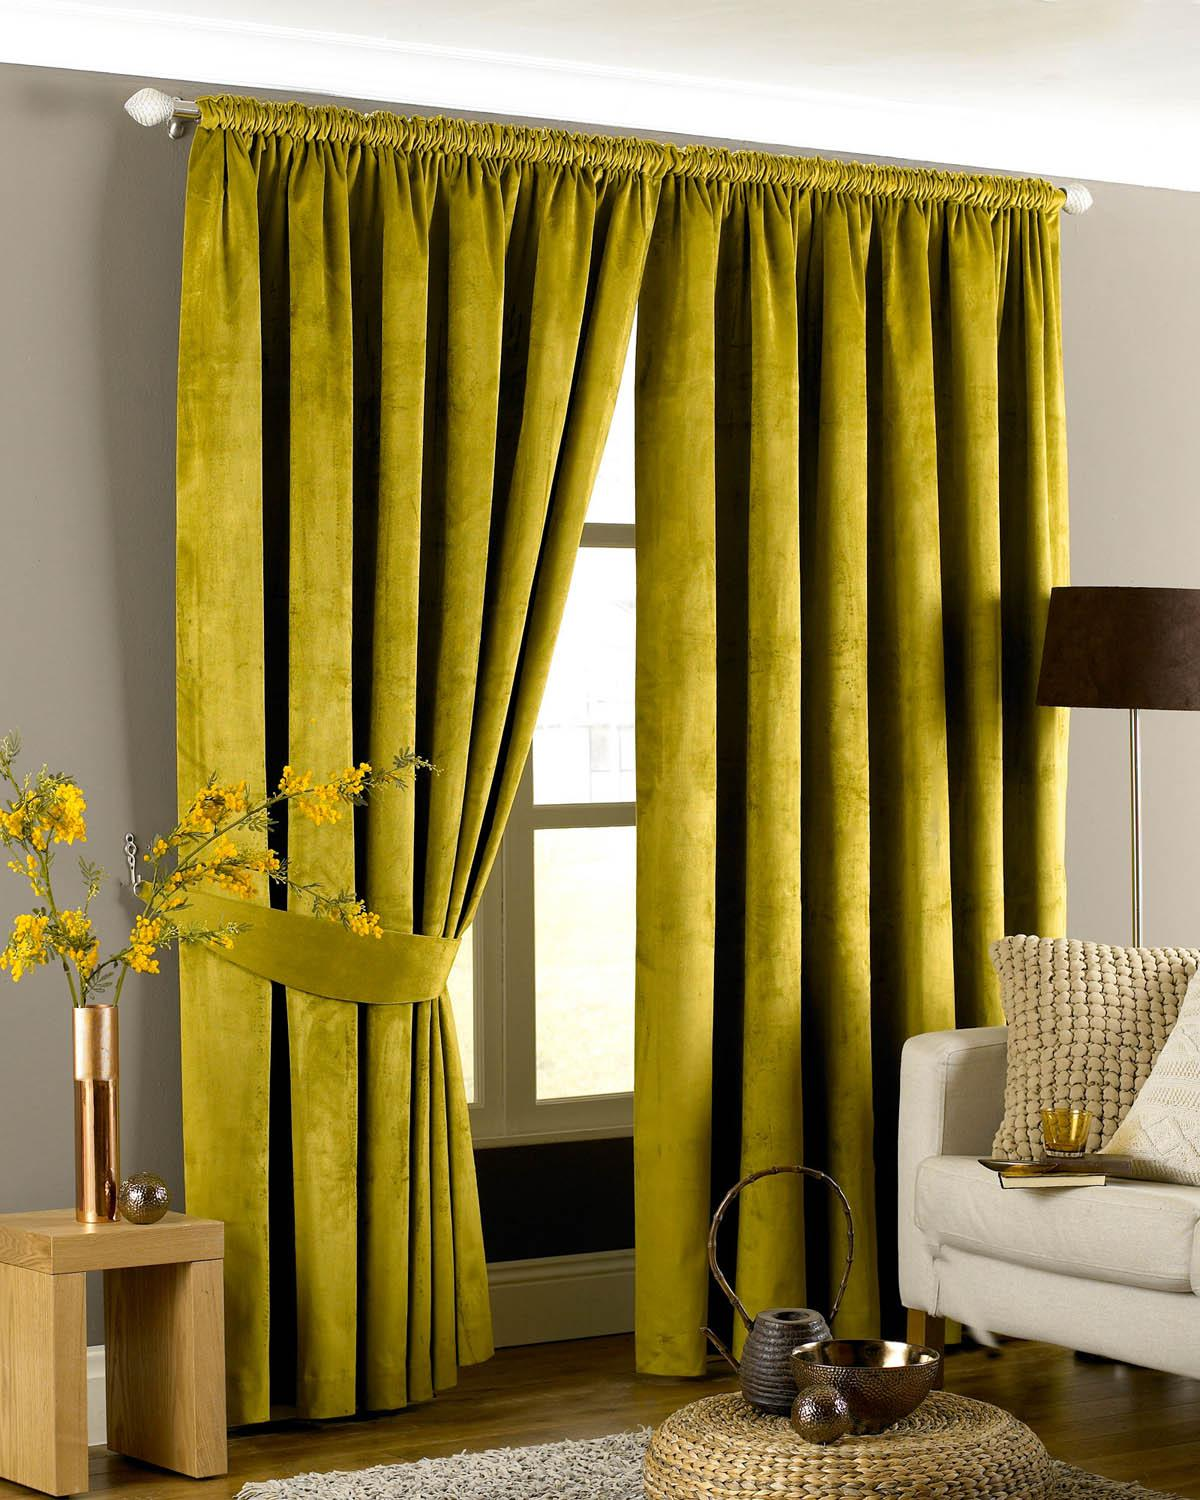 Cheap Curtains Online Curtains Ready Made Shop For Cheap Curtains And Blinds And